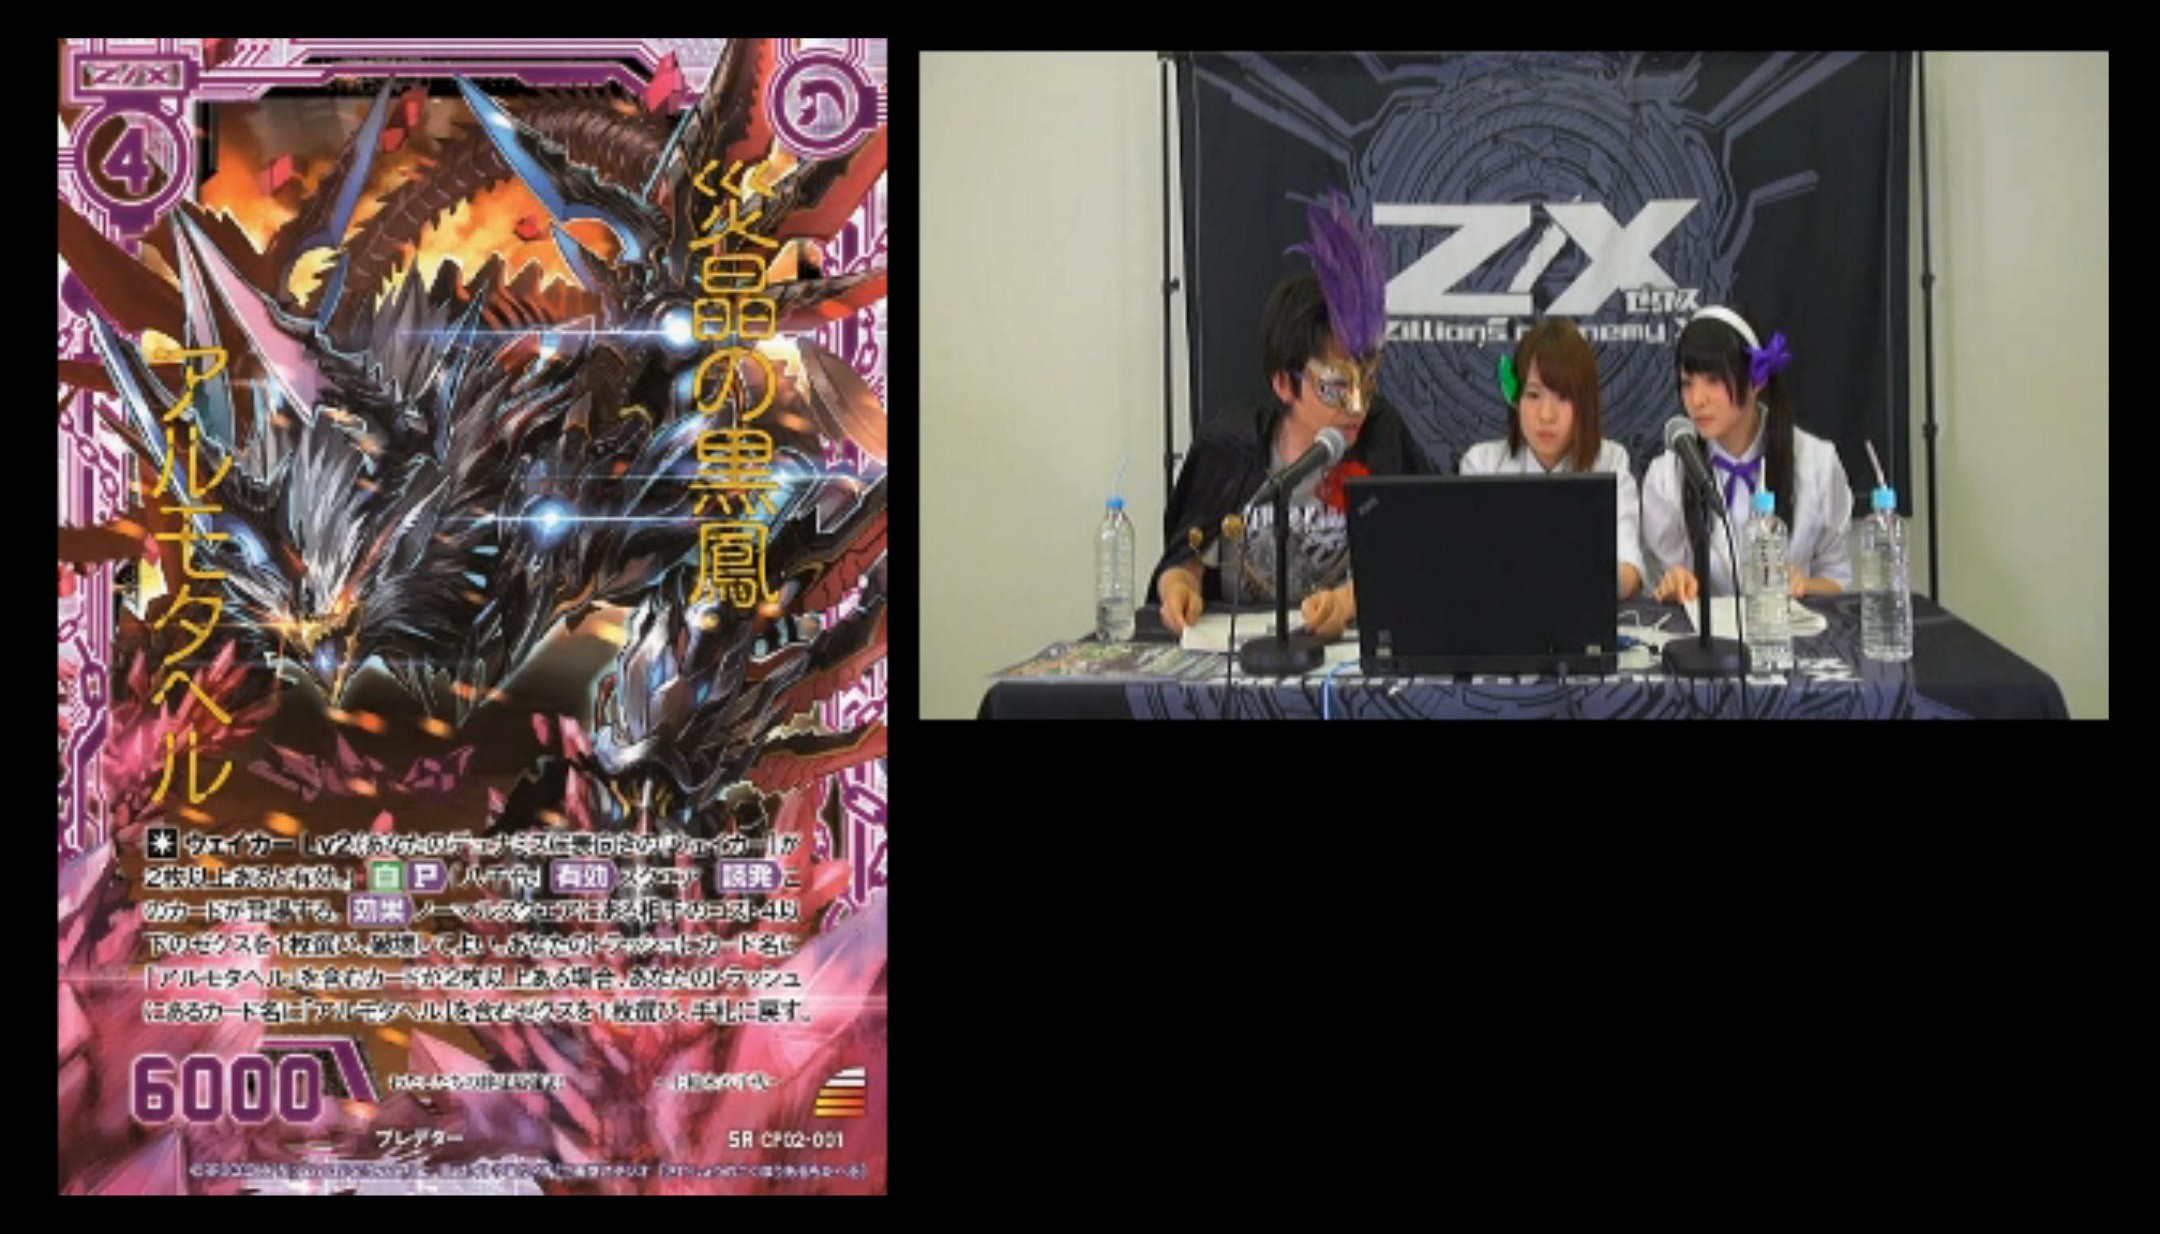 zx-ignition-broadcast-170531-023.jpg